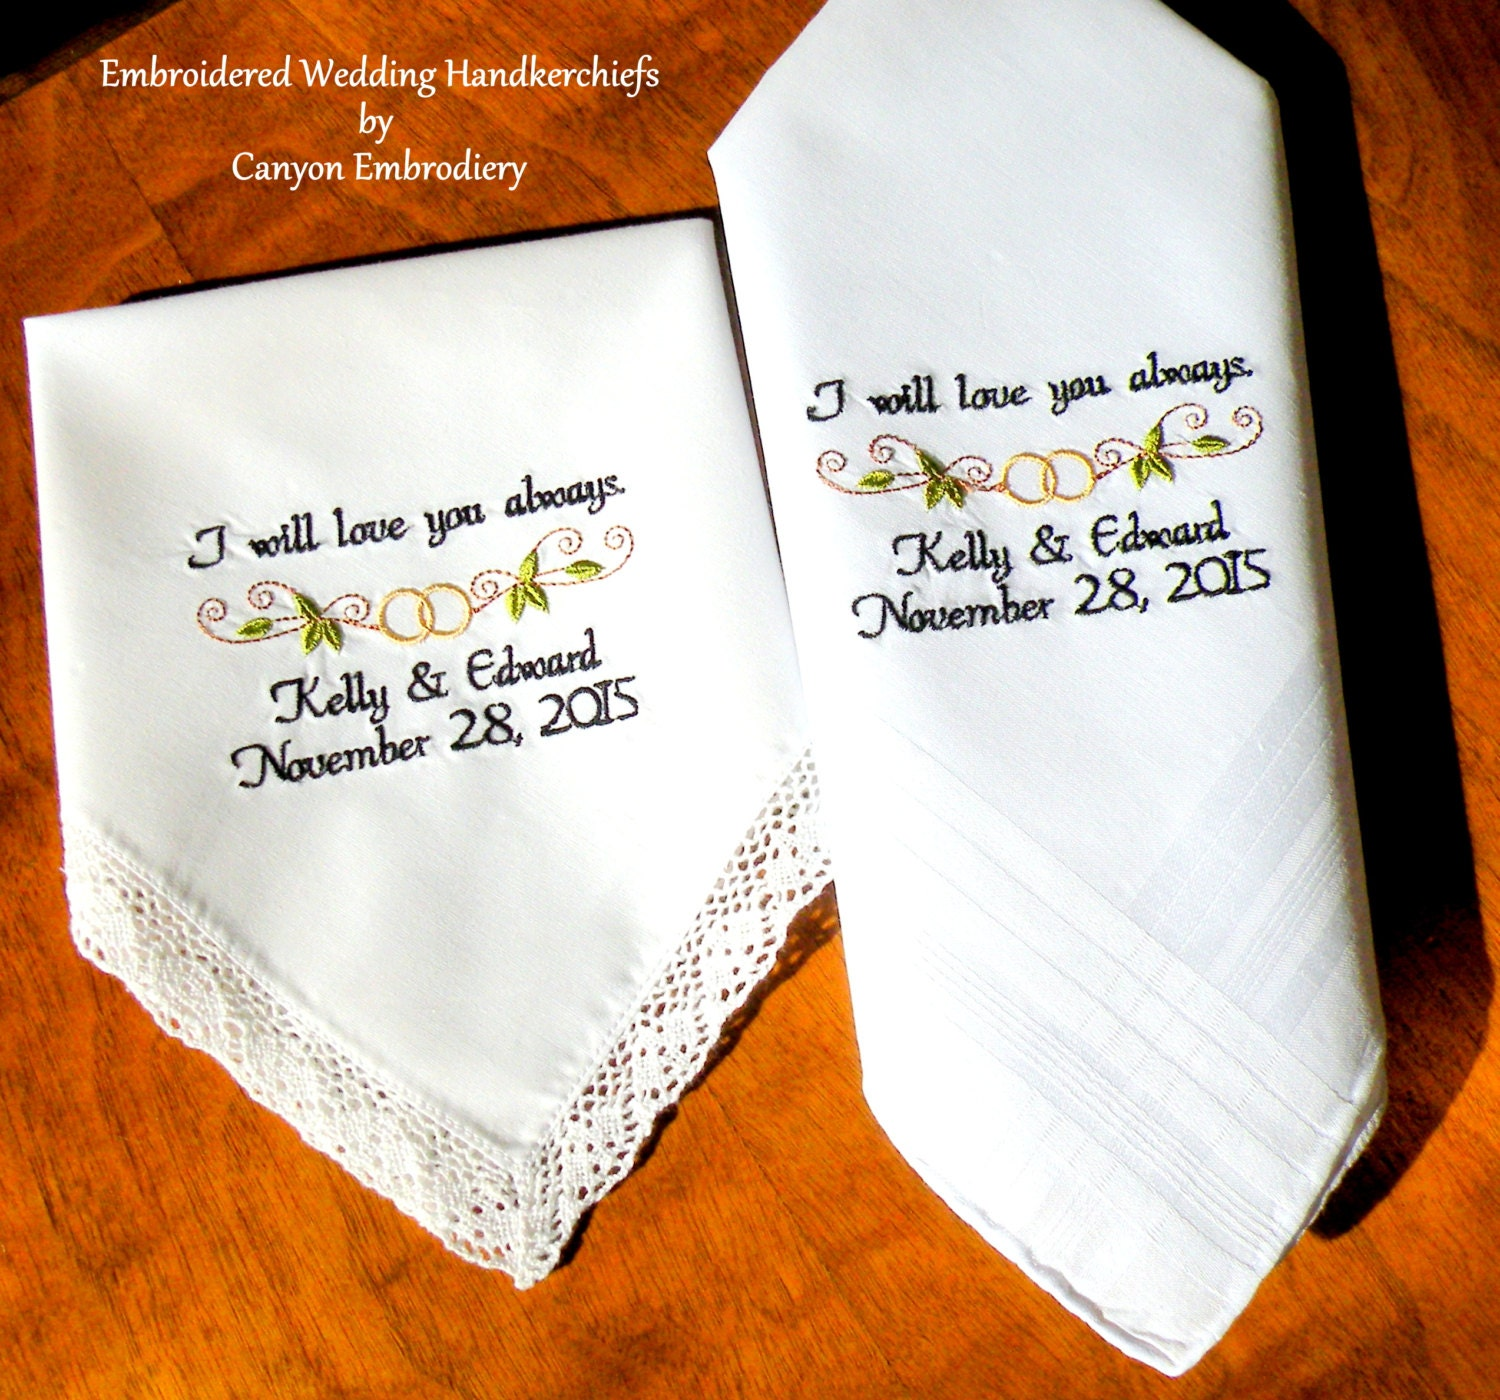 Bride and Groom Gifts - I will love you always - Wedding Date ...